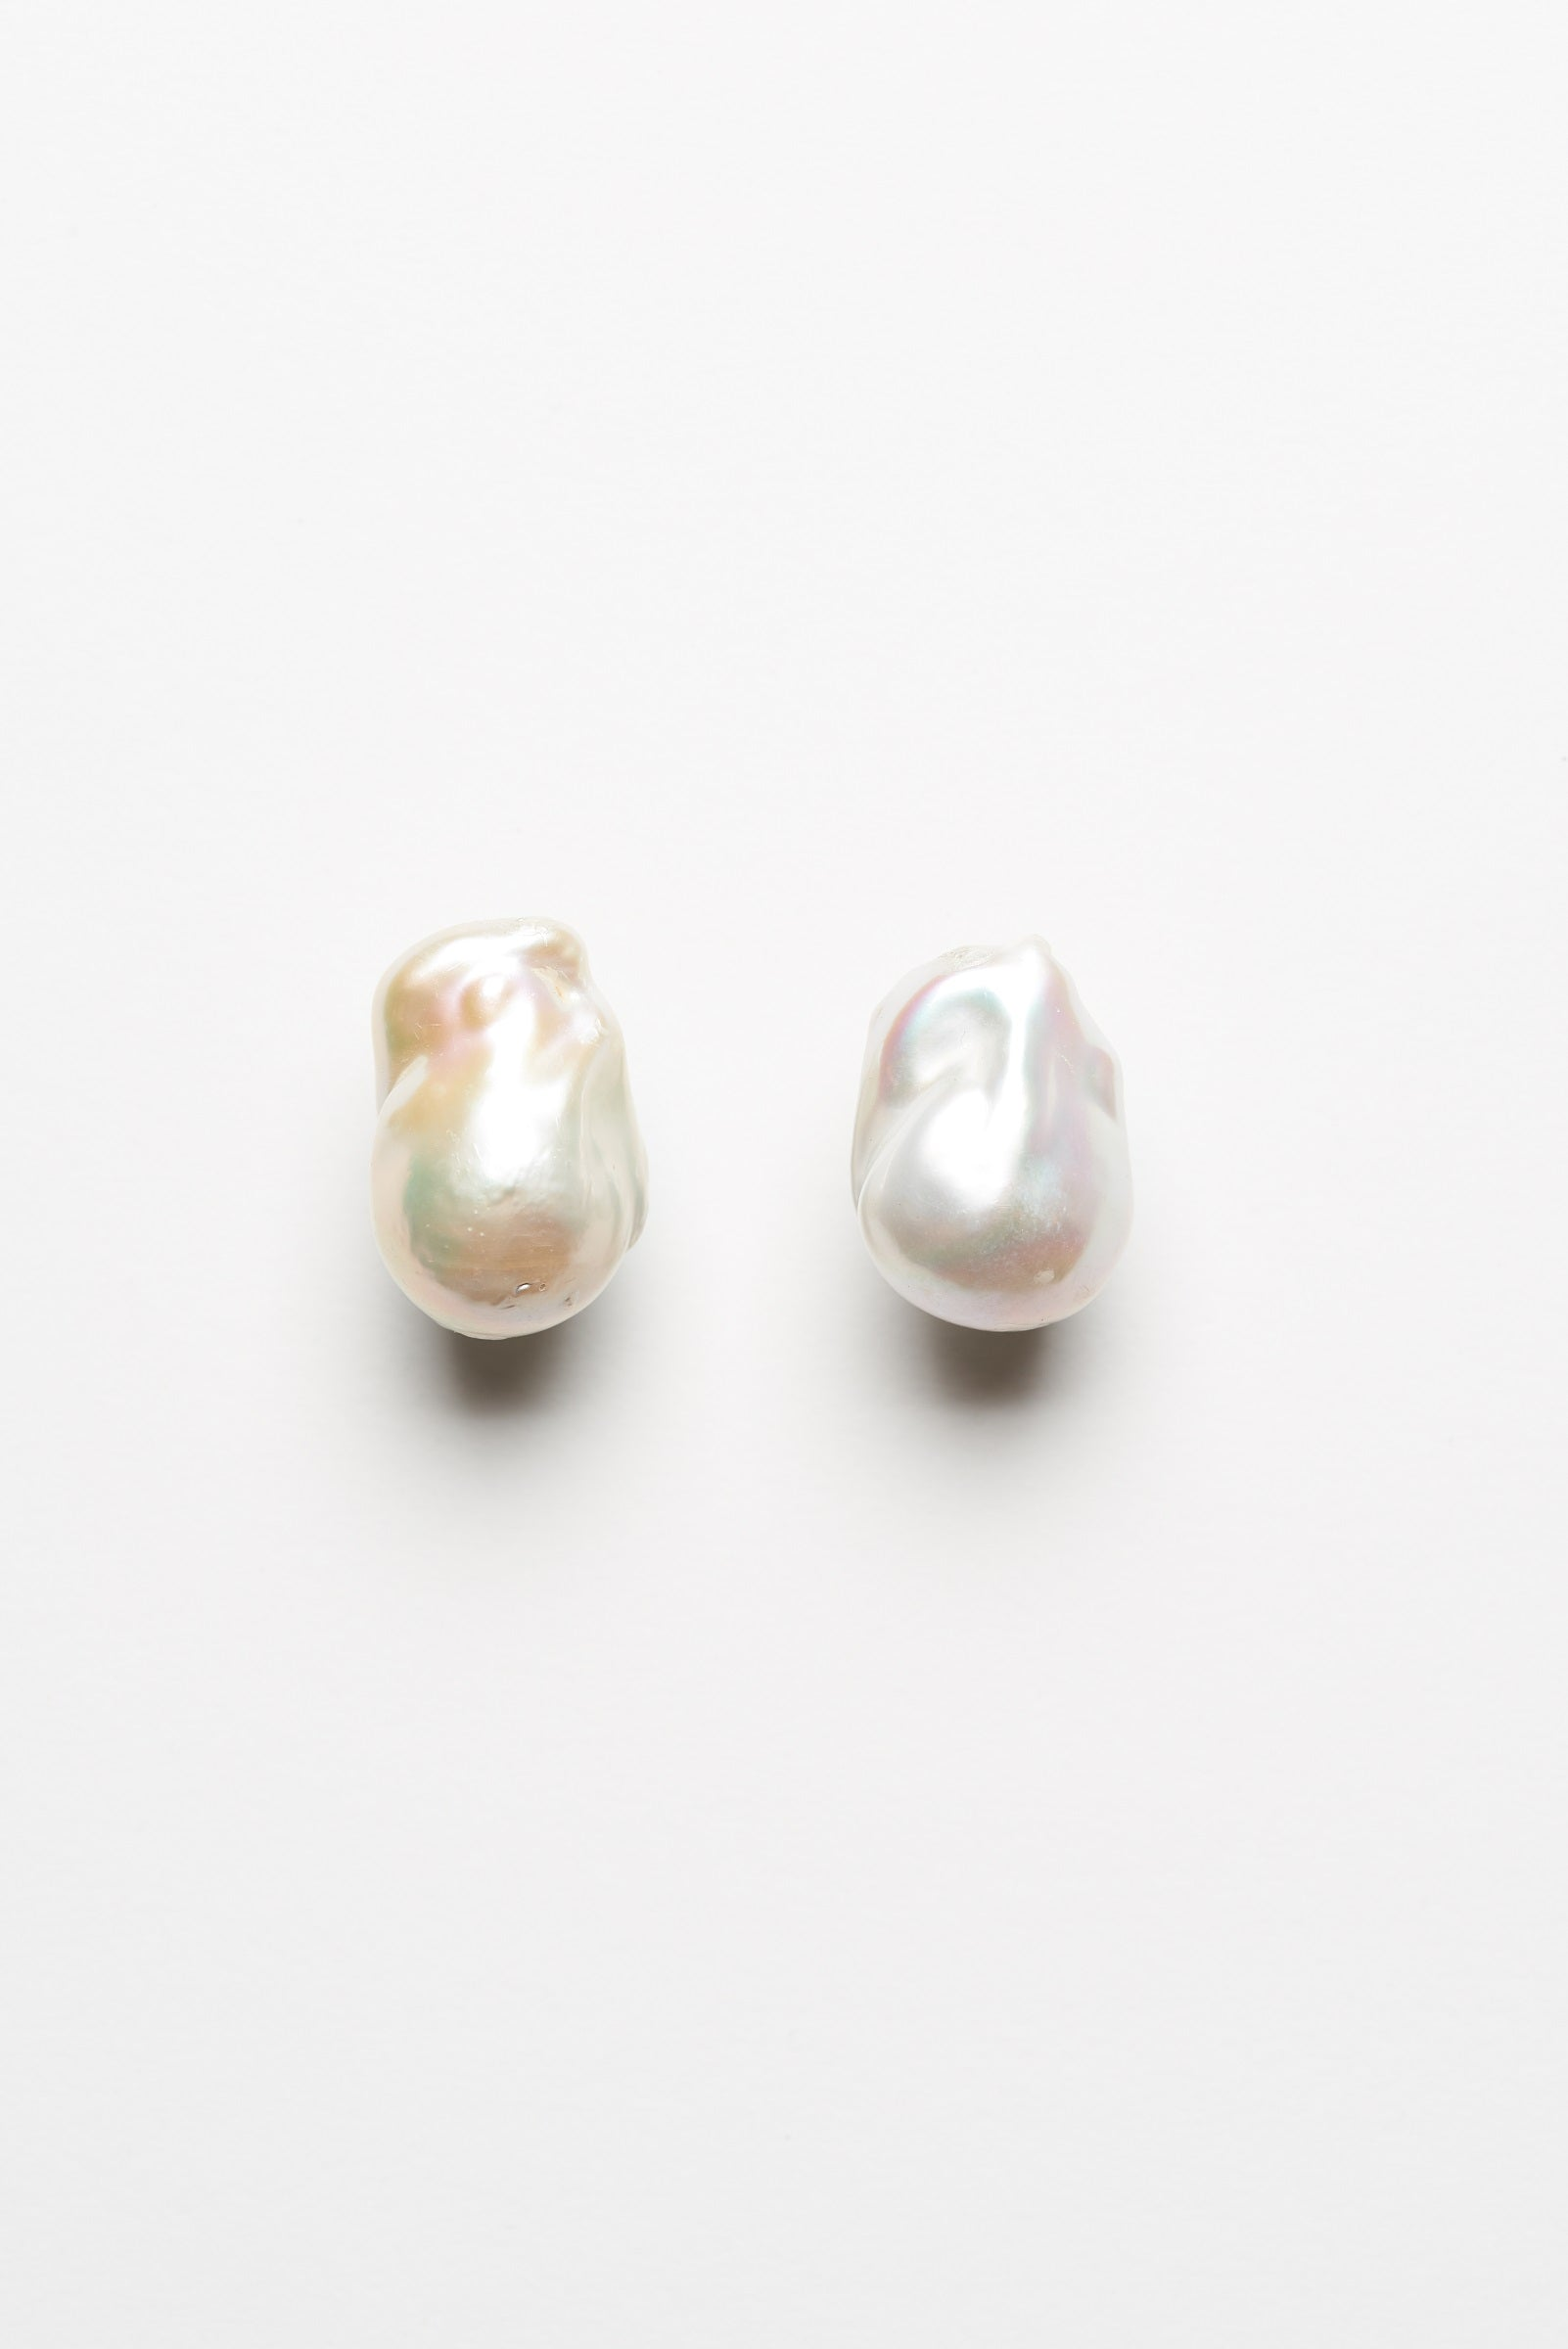 Earclips in fresh water pearls - single